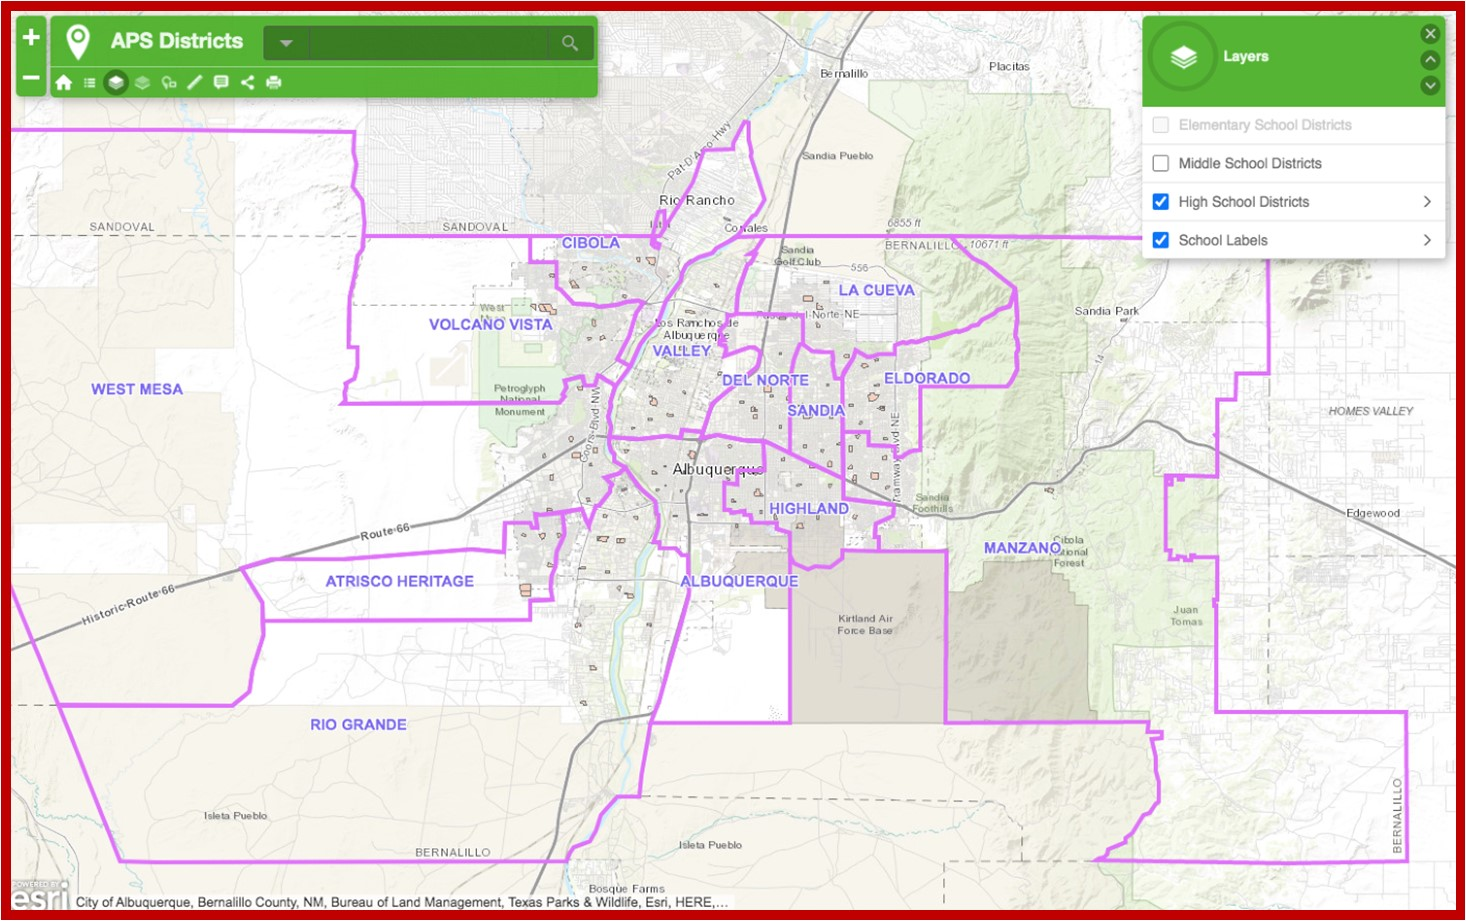 Albuquerque Public School Districts Map